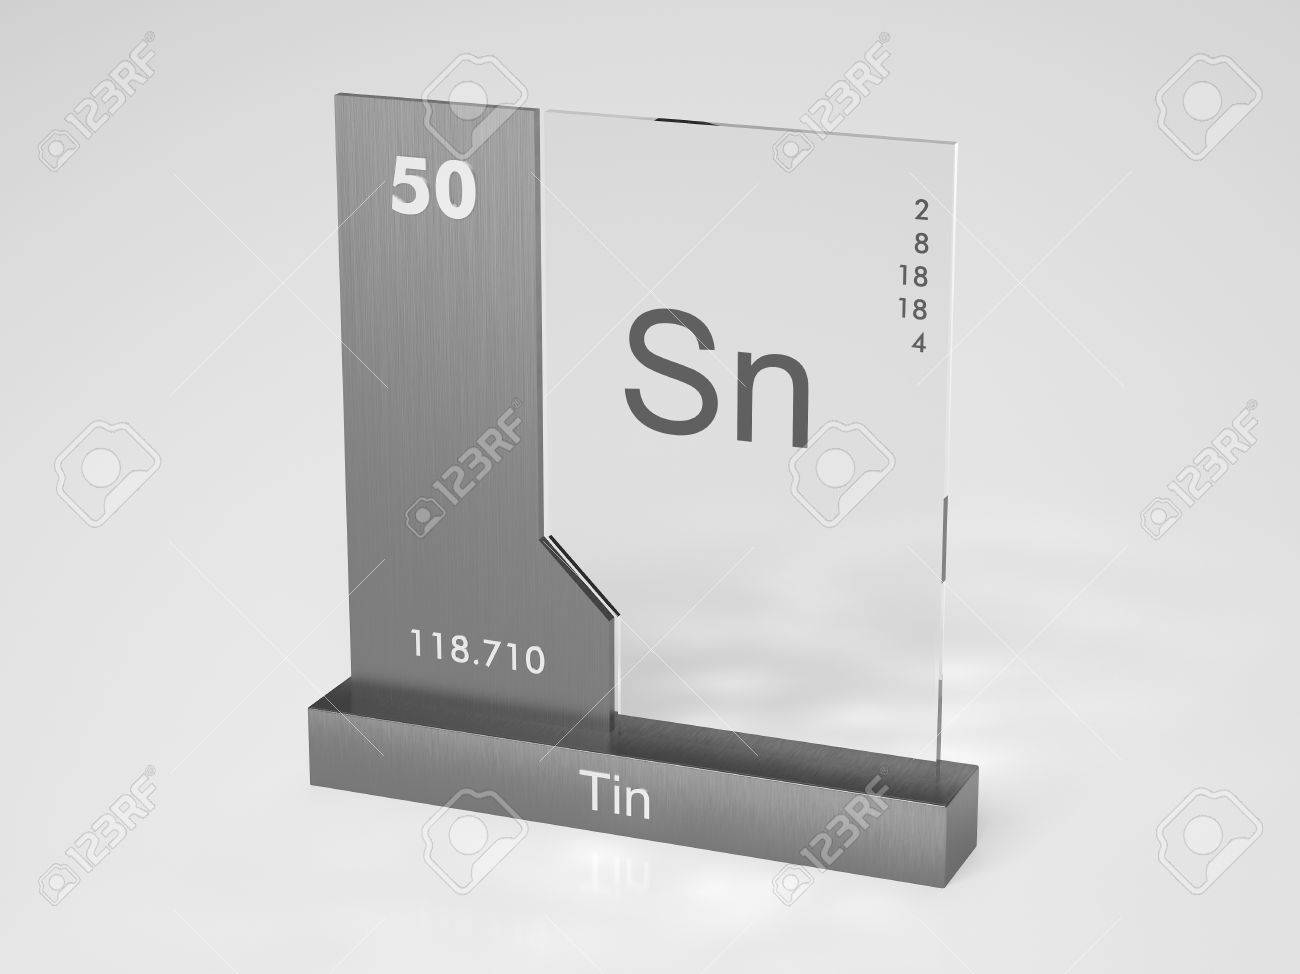 Tin symbol sn chemical element of the periodic table stock photo stock photo tin symbol sn chemical element of the periodic table urtaz Image collections